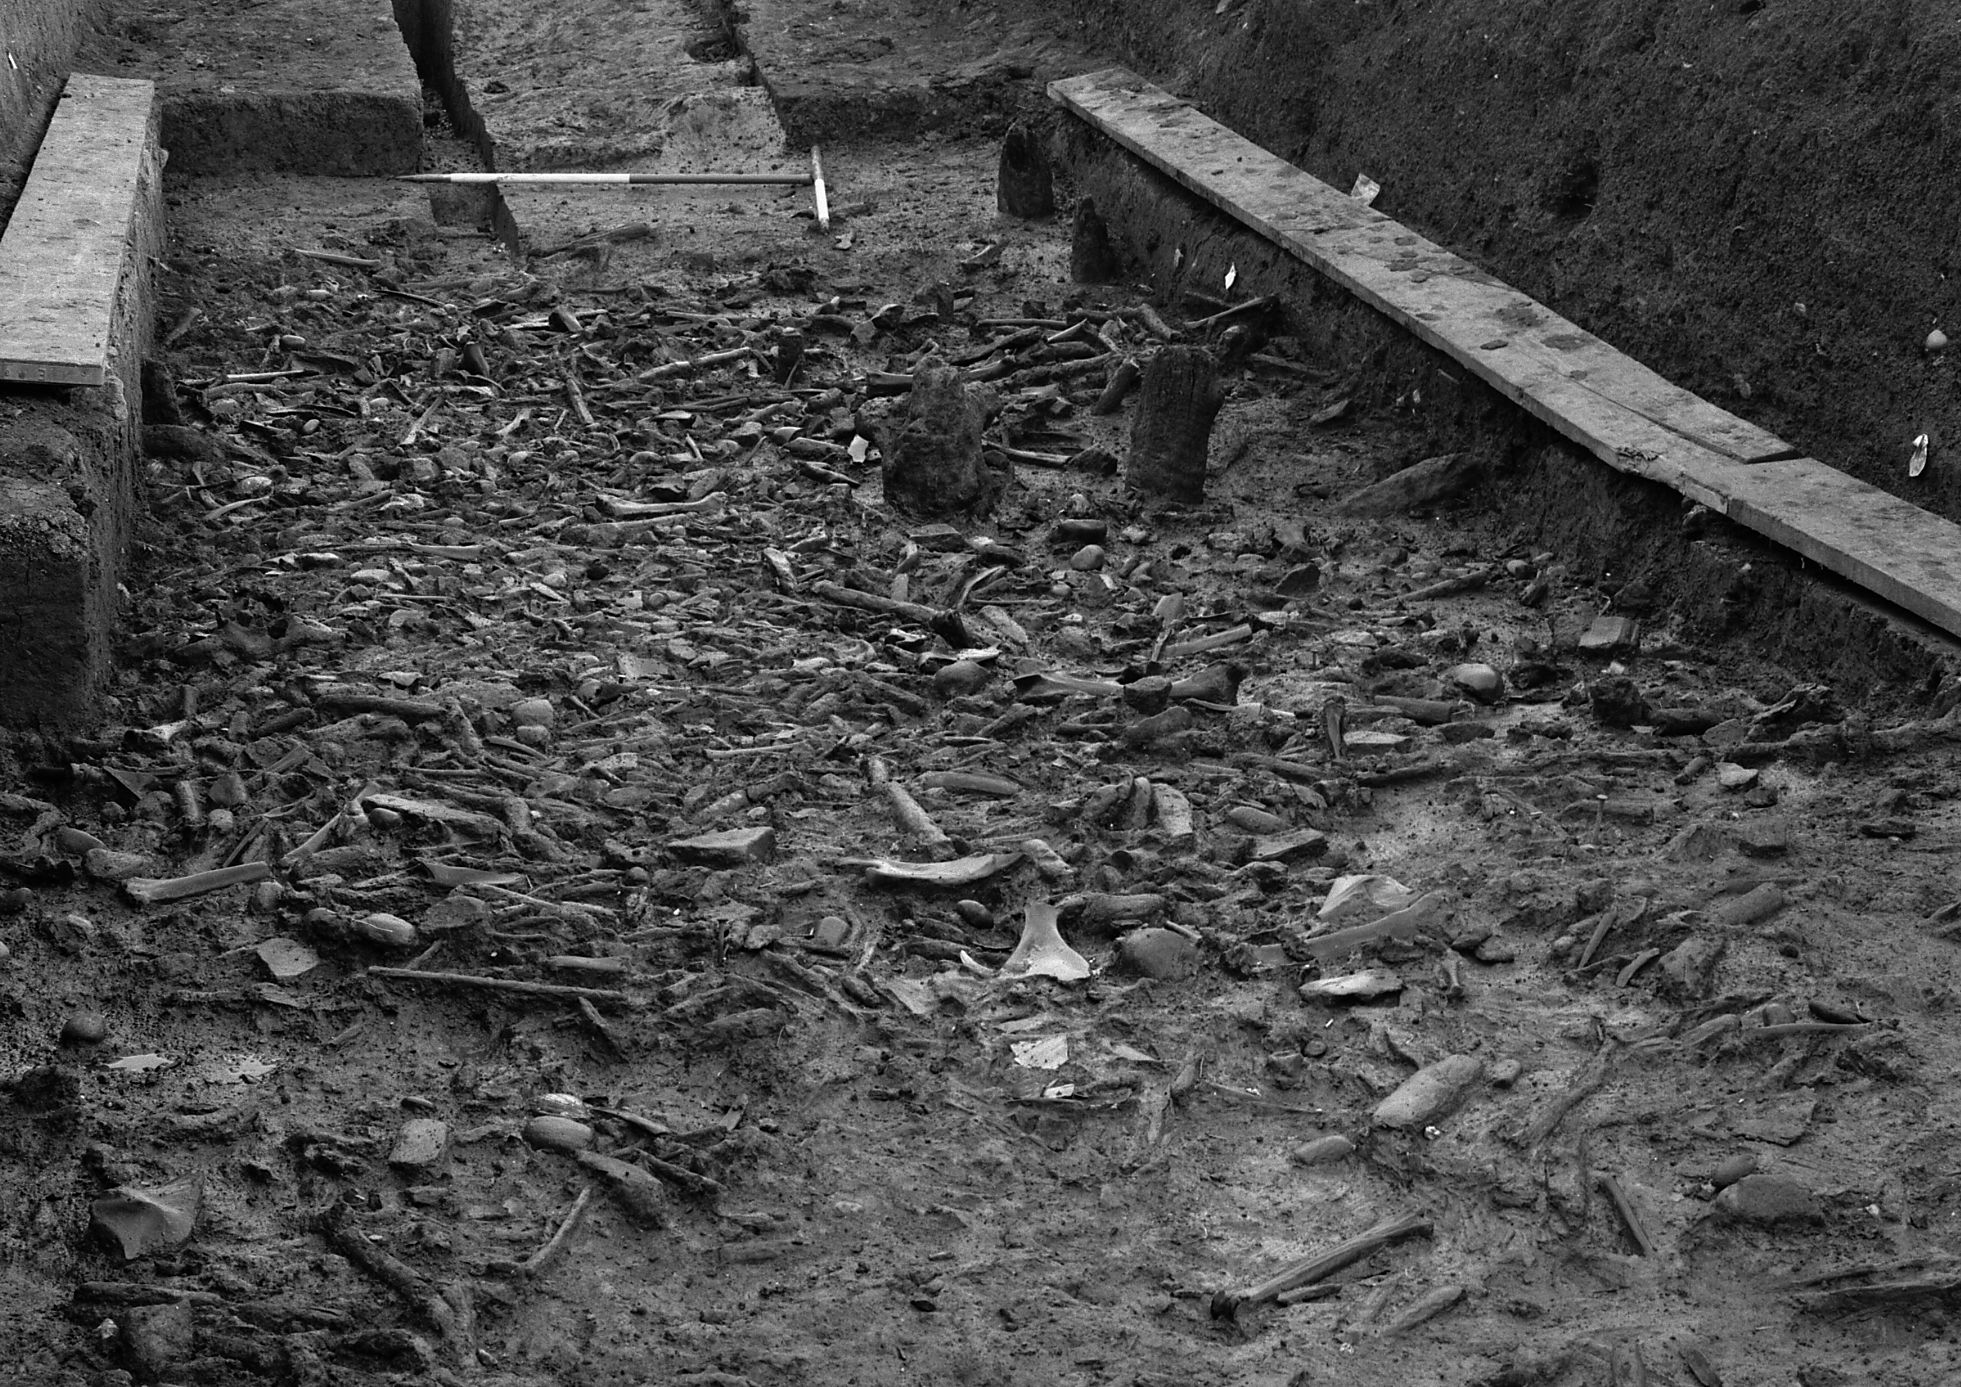 A photo of an archaeological excavation, the bottom of which is very densely littered with debris.